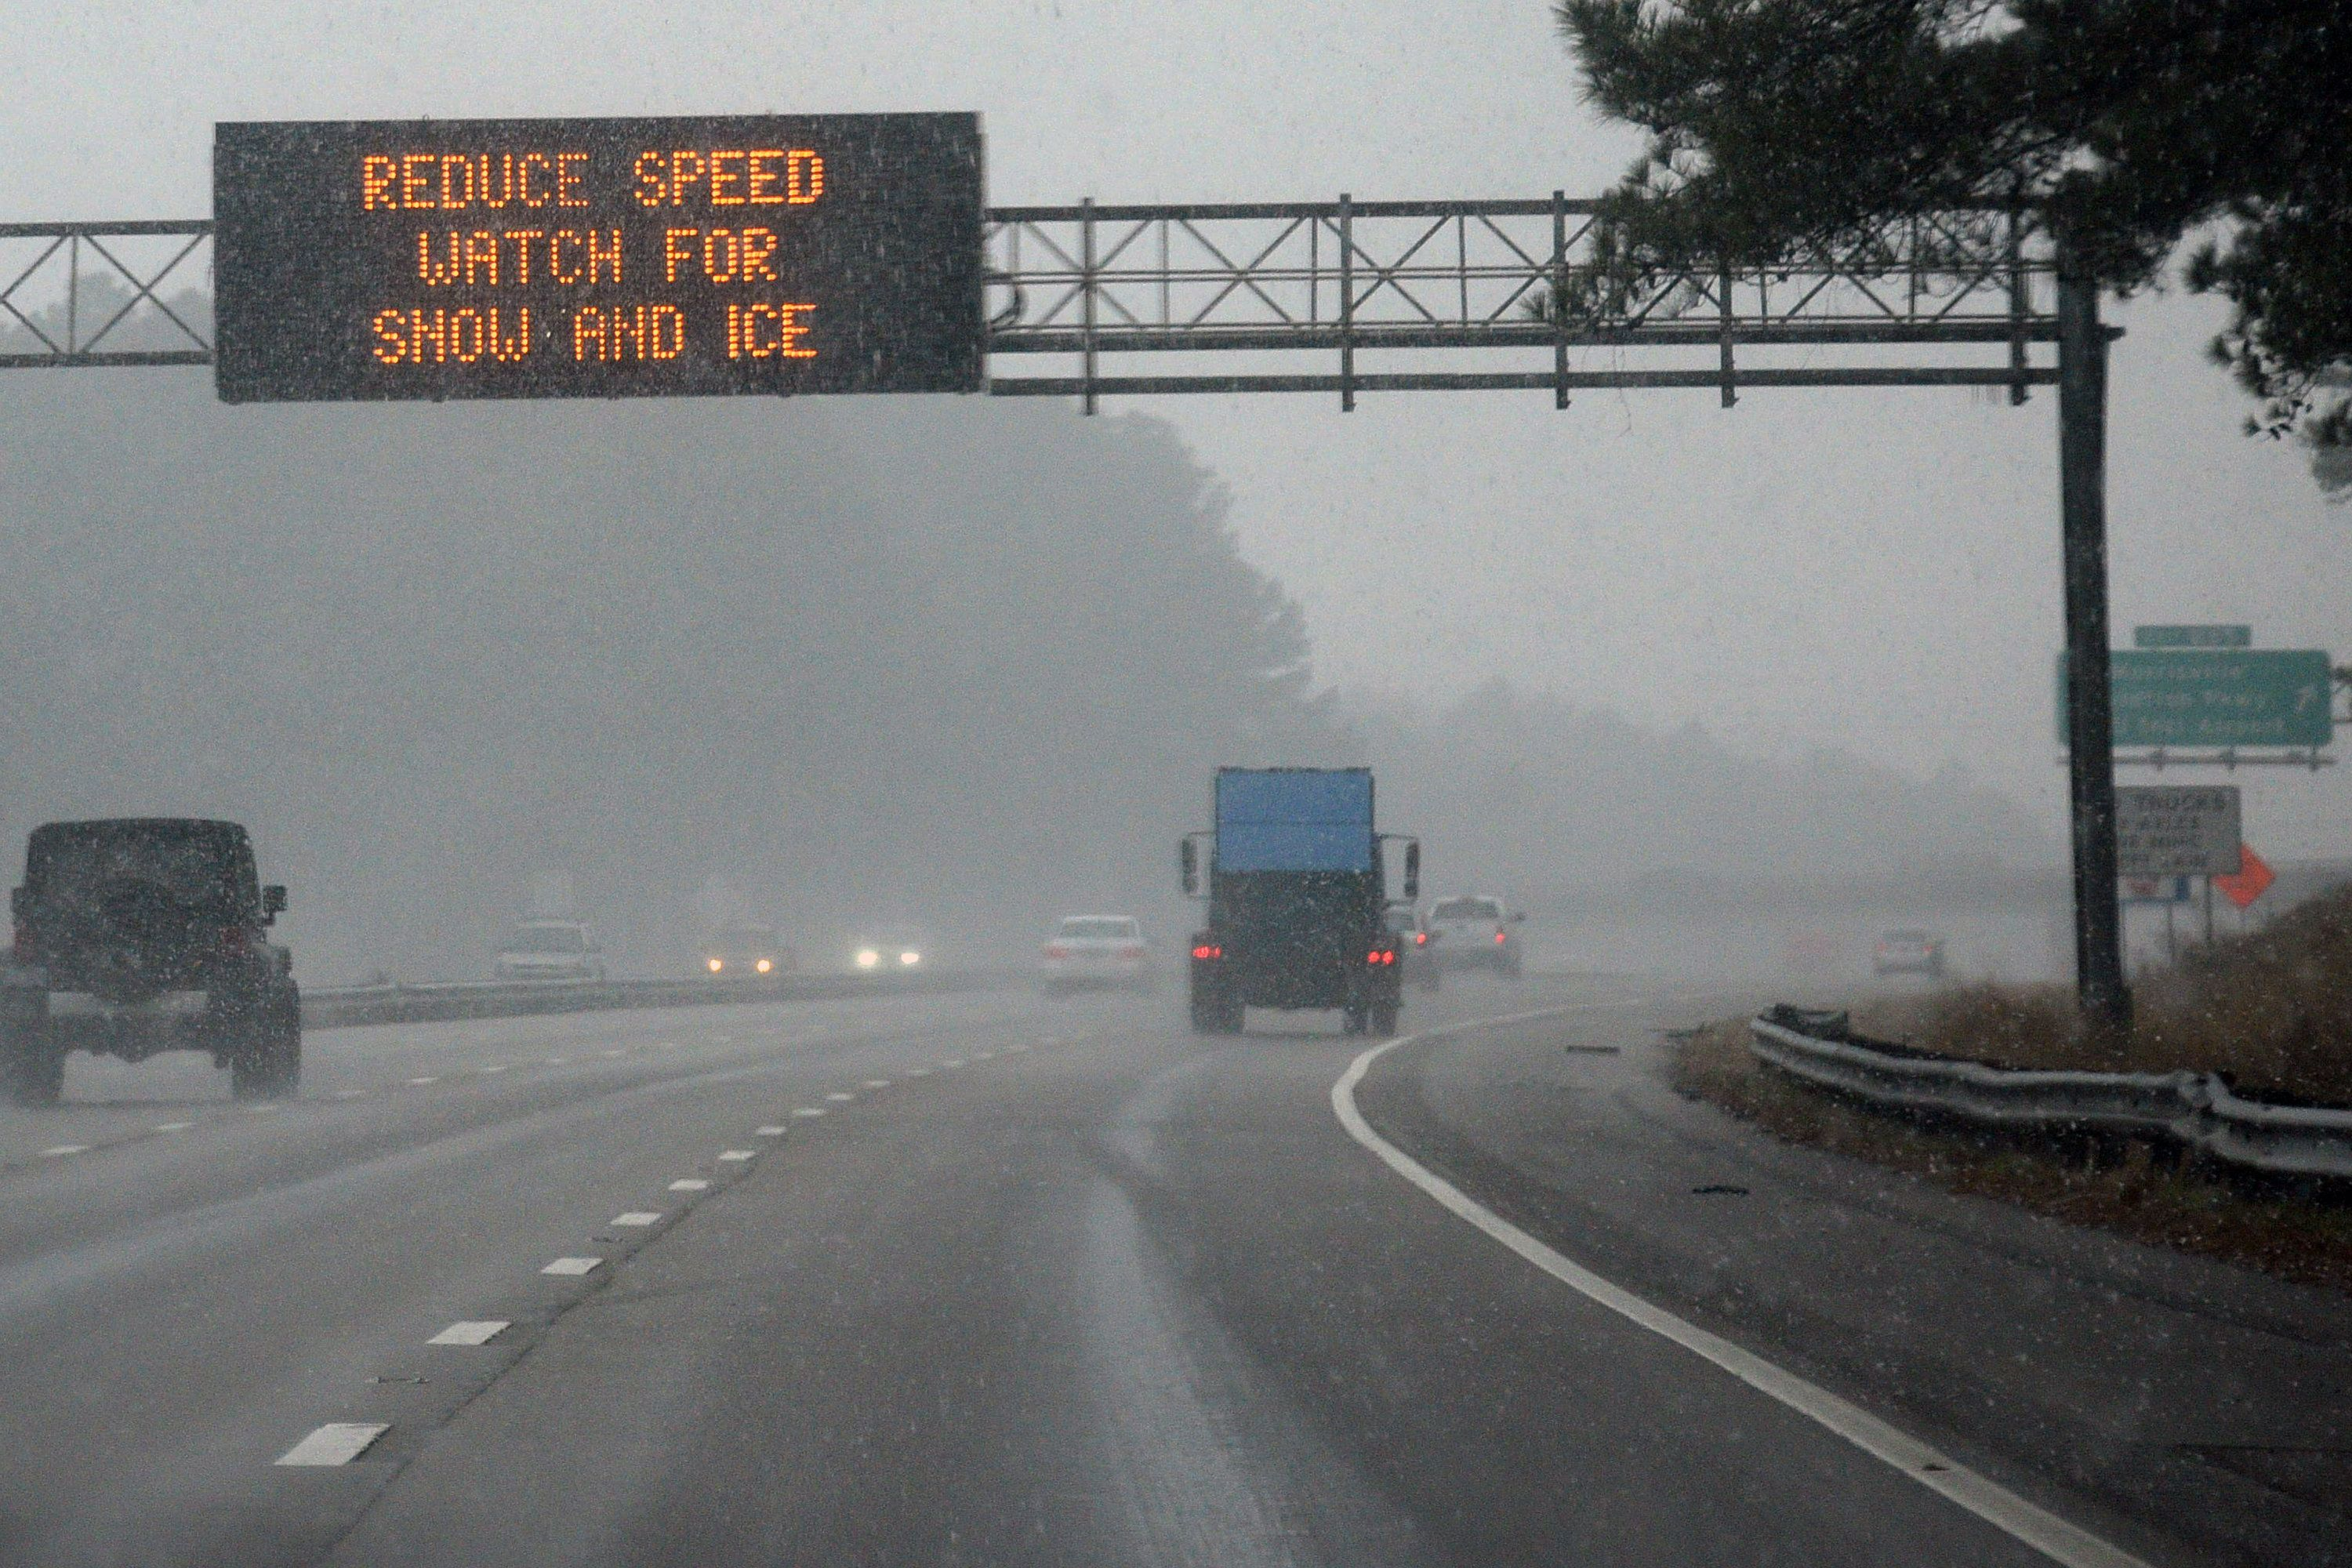 Commuters in US South cope with ice after deadly storm